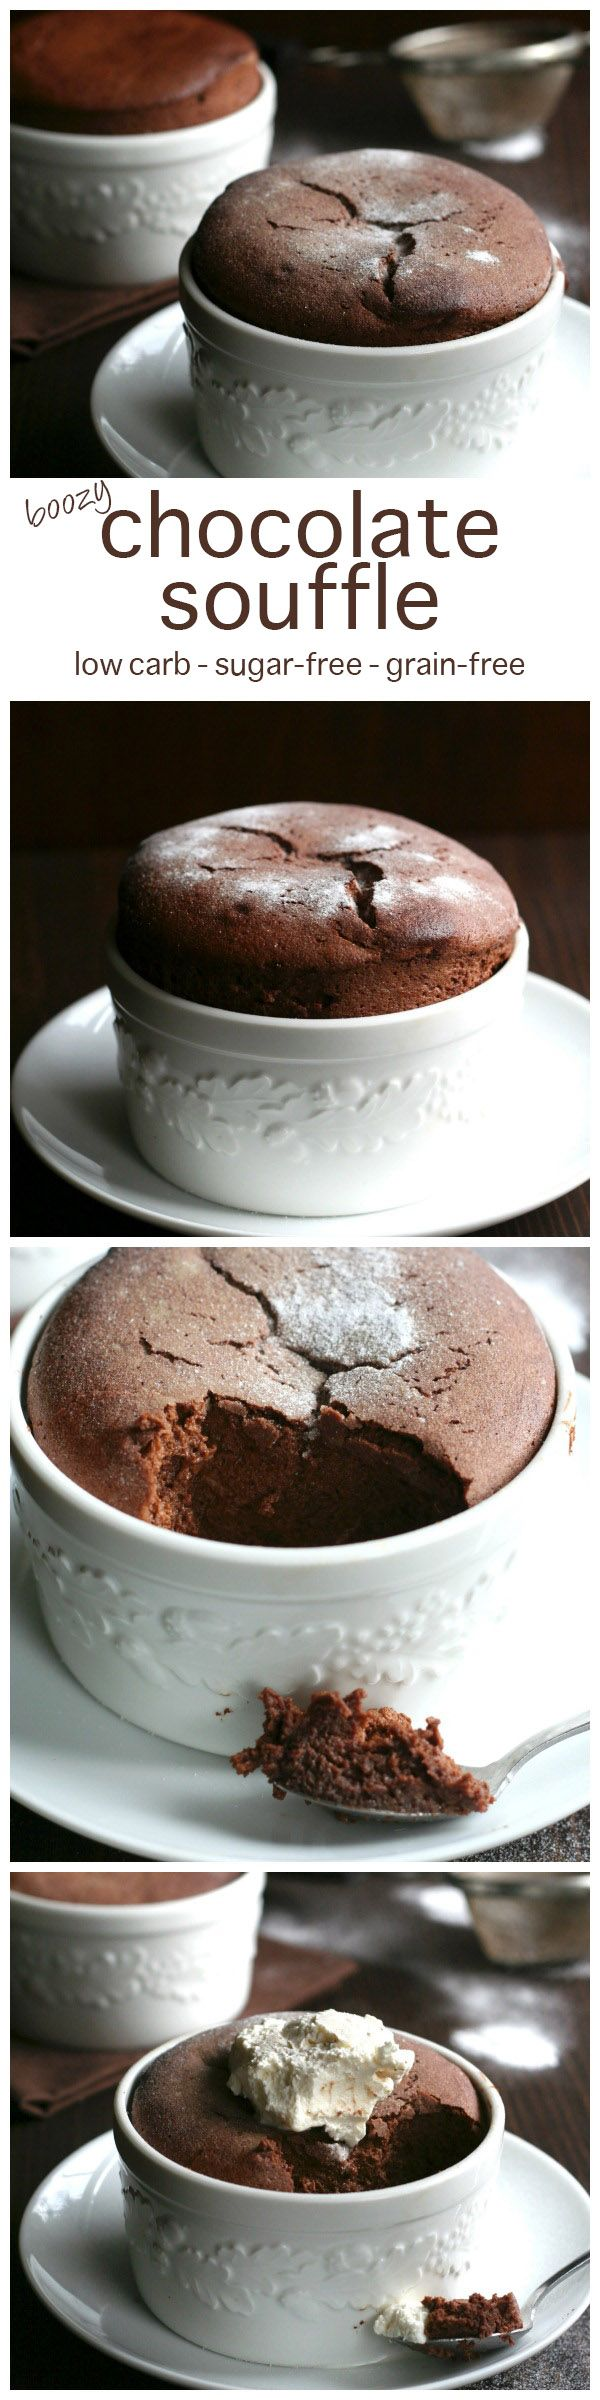 Low Carb Chocolate Souffle